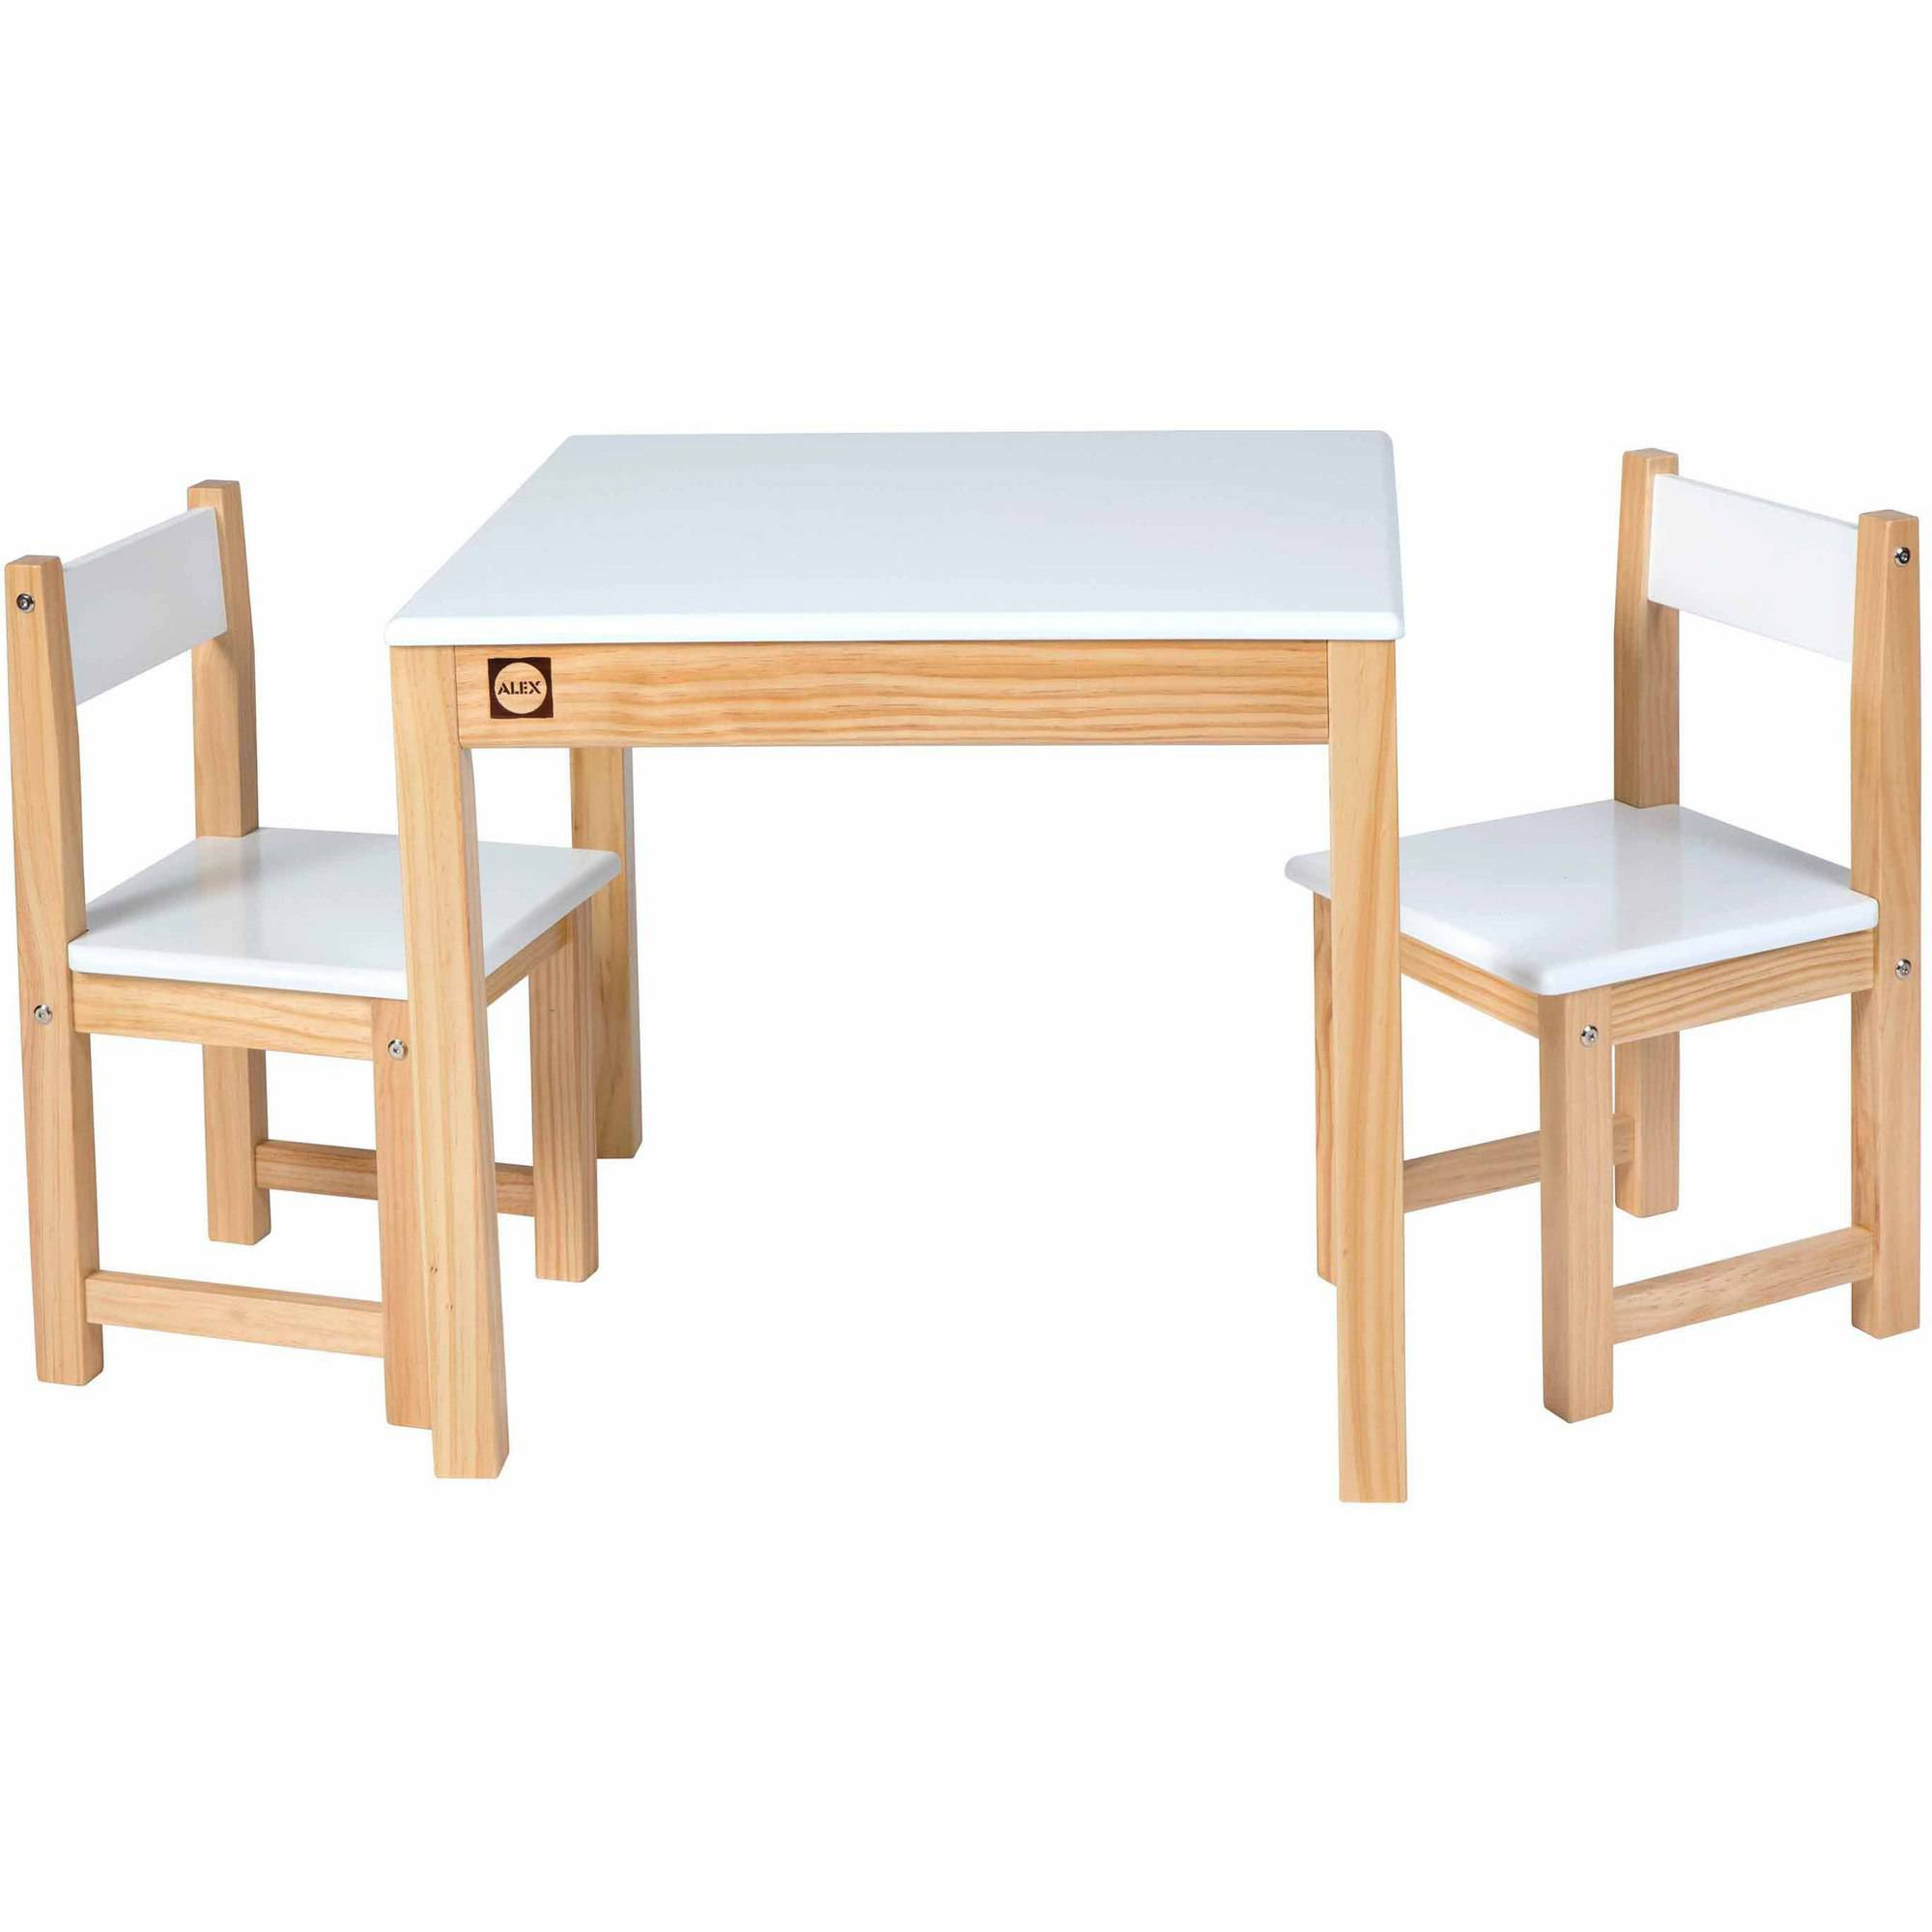 ALEX Toys Artist Studio Wooden Table and Chair Set, Multiple Colors